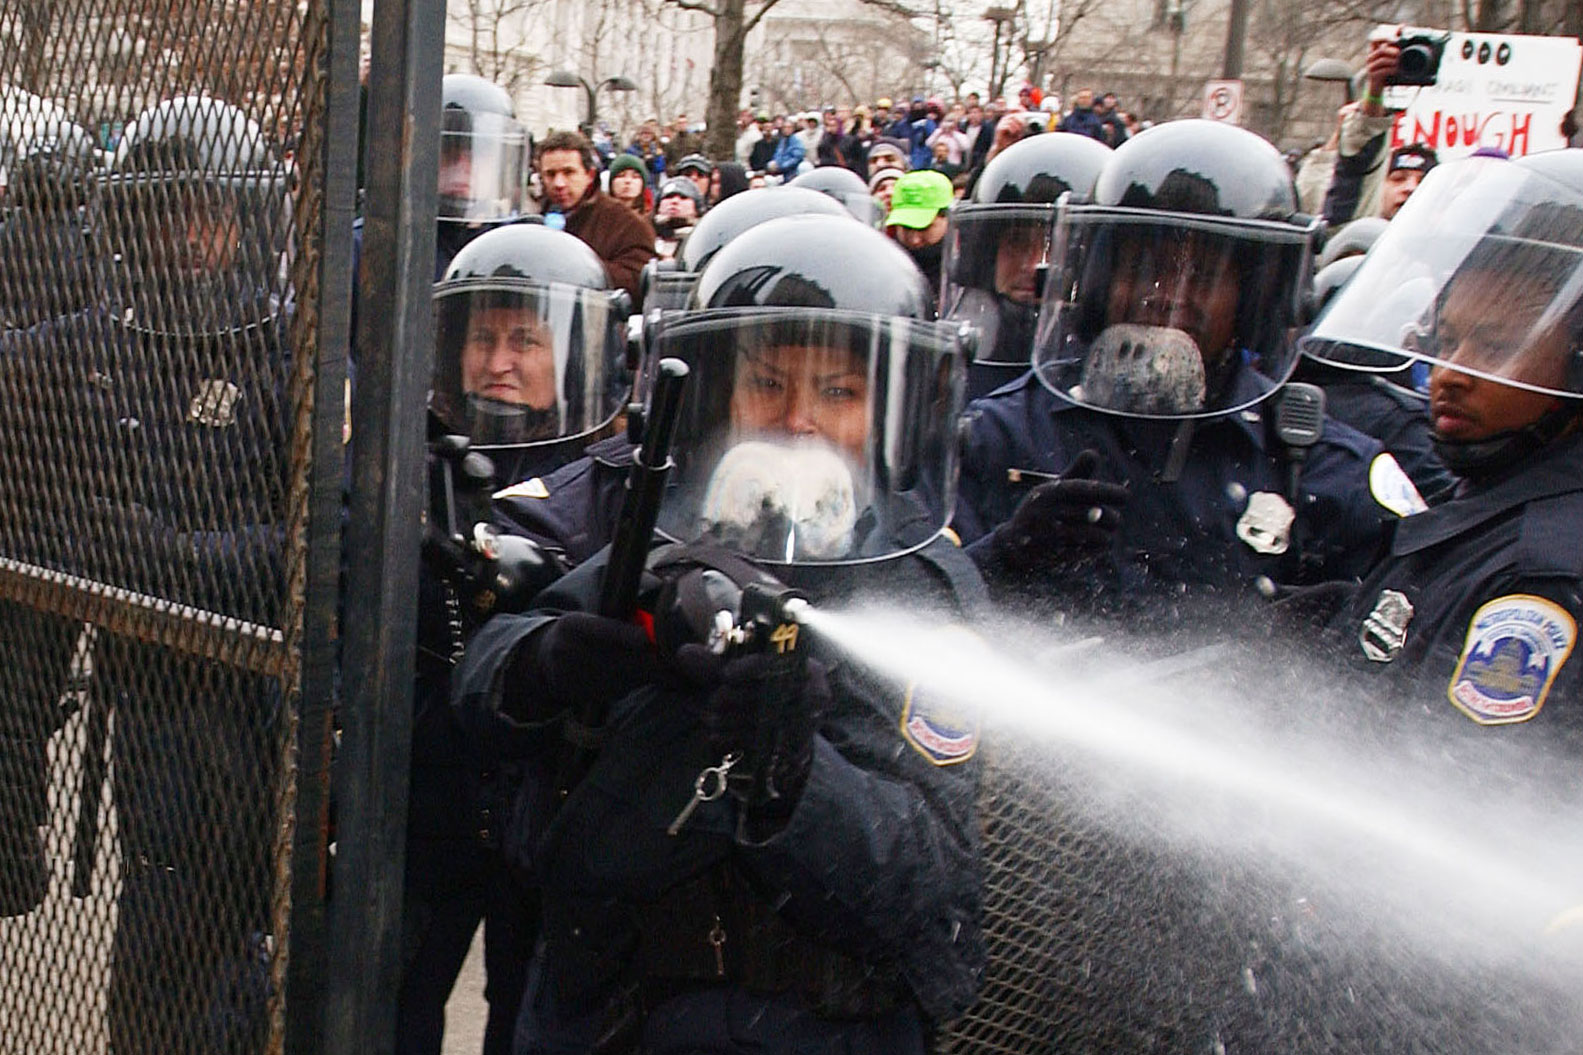 A Washington, D.C., police officer pepper sprays demonstrators after a barricade along Pennsylvania Avenue was pulled down during the inaugural parade, January 20, 2005.